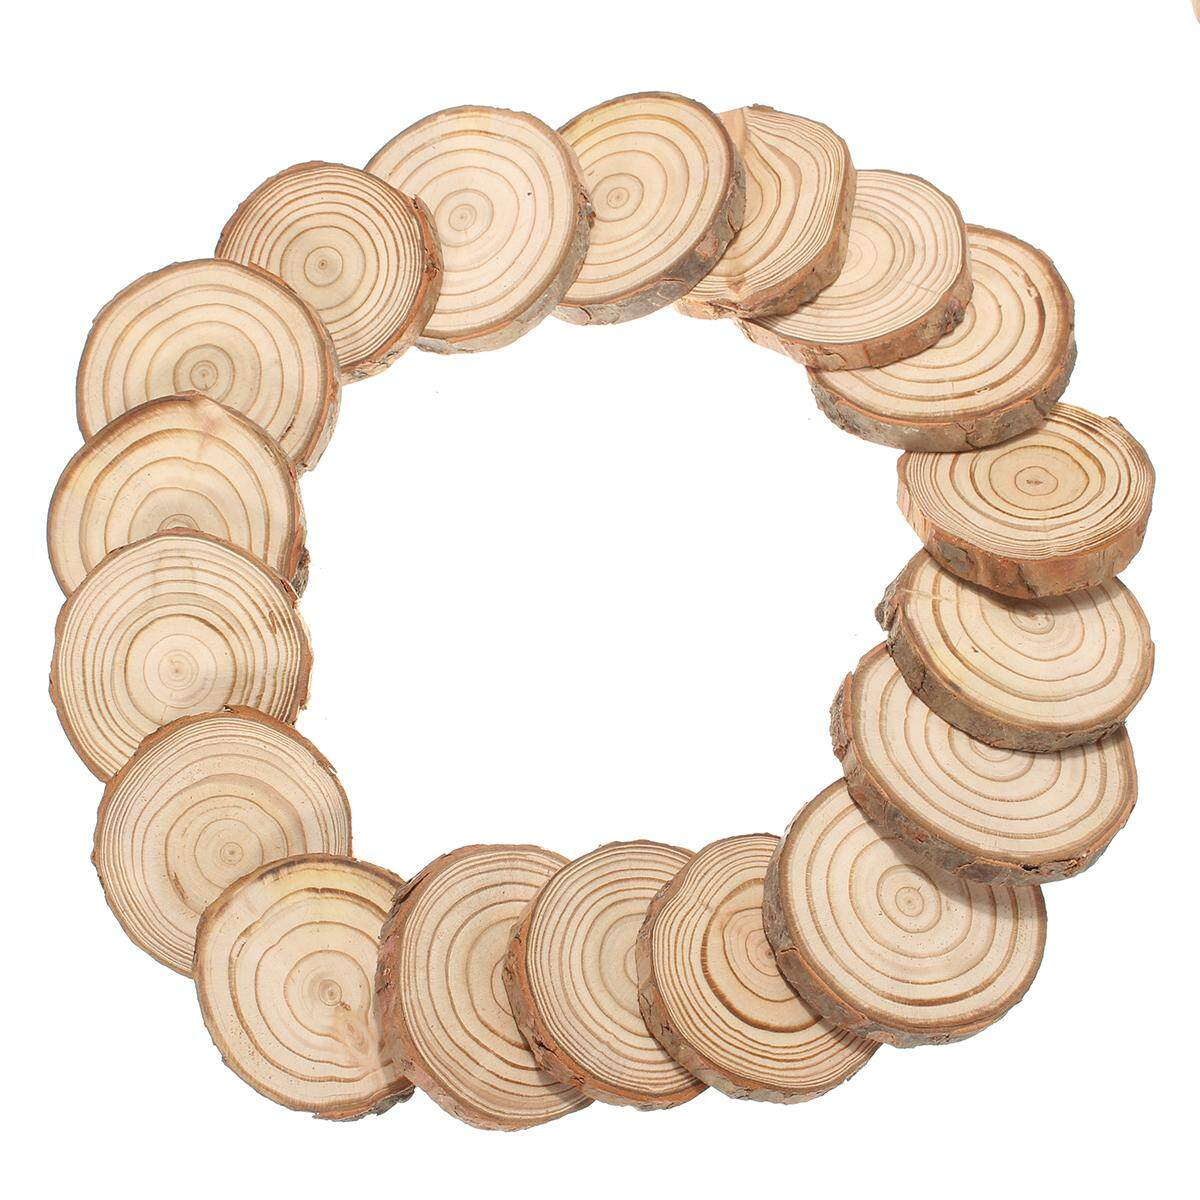 50pcs Rustic Natural Round Wood Pine Tree Slice Disc Wedding Centerpiece Decor[6-7x1cm] By Glimmer.